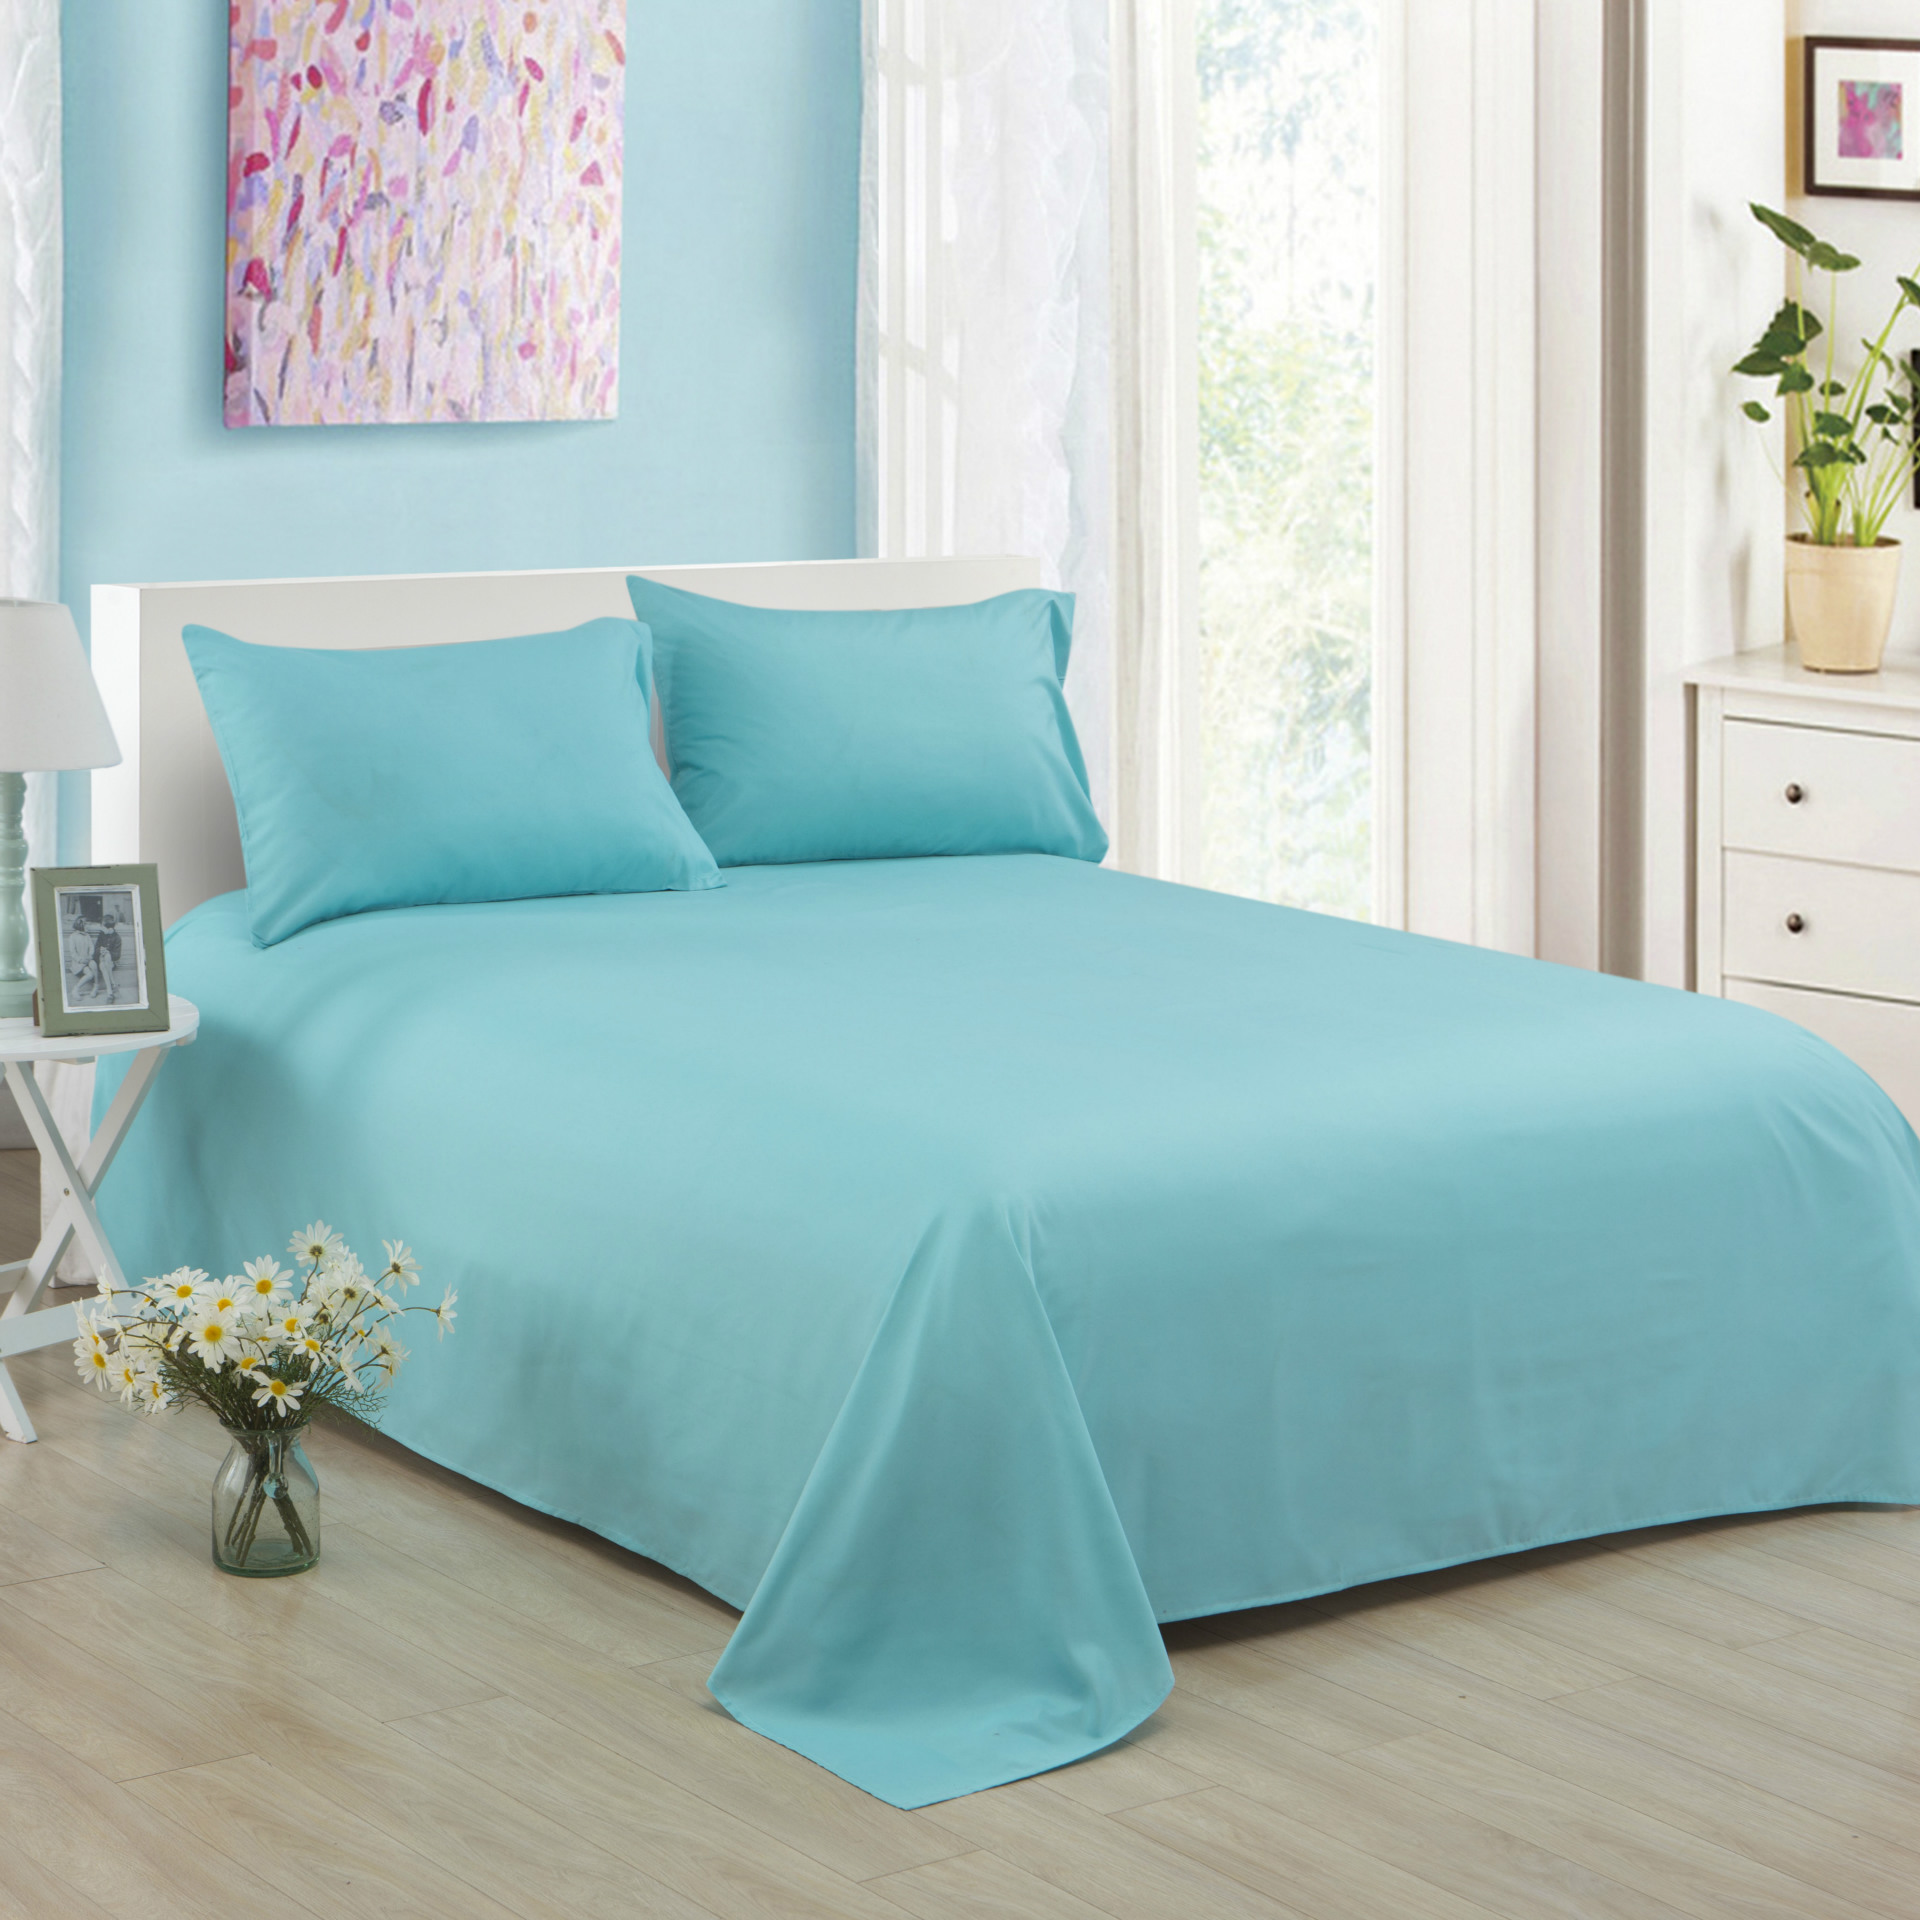 ropa de cama Solid color polyester cotton bed sheet hotel home soft brushed flat sheet queen bed cover not included pillowcase 6